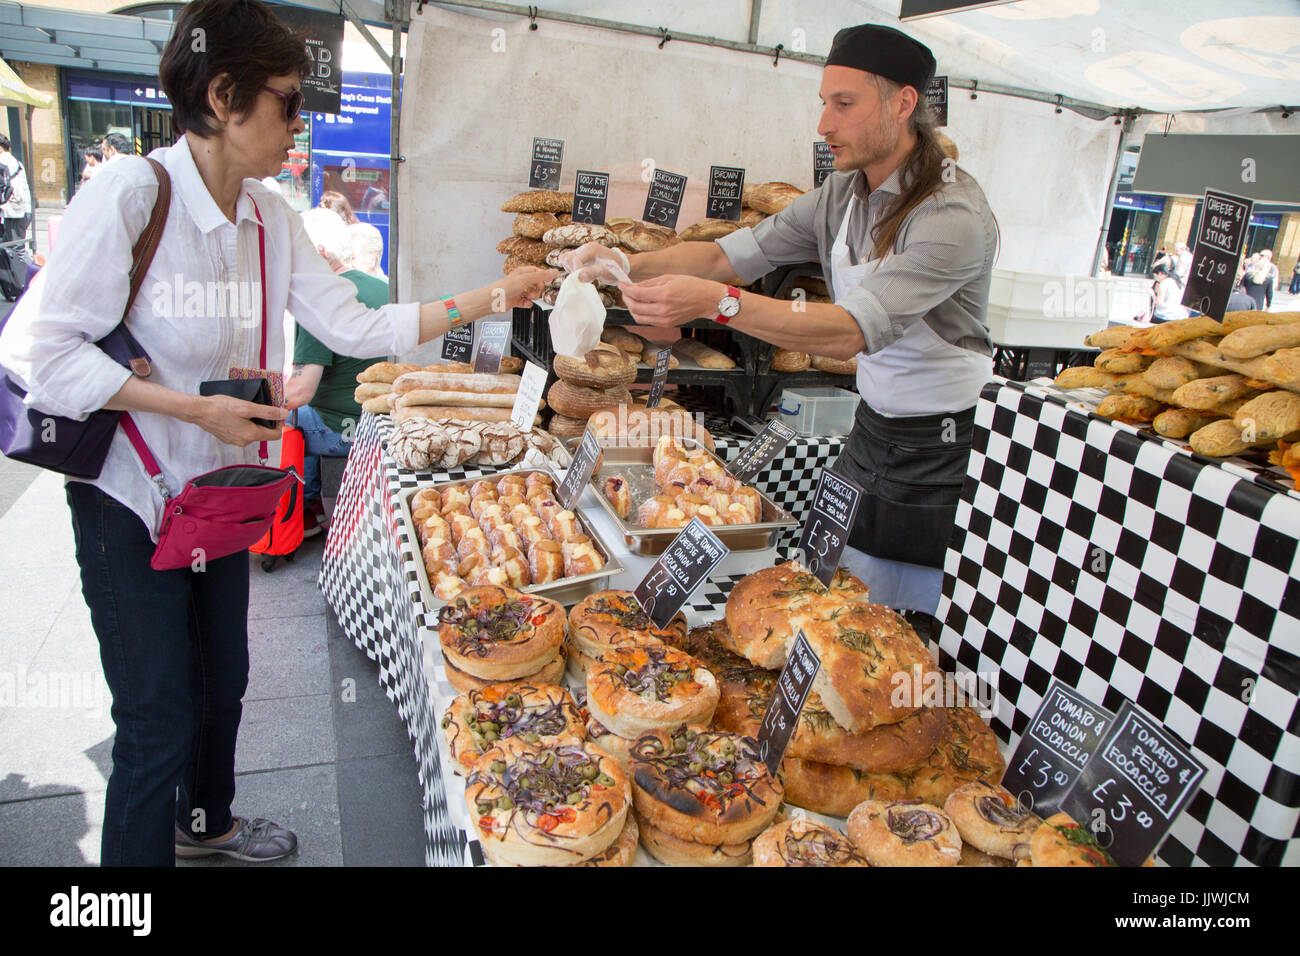 Artisan bakery stall at the Real Food Market, Kings Cross. Every Wednesday to Friday outside King's Cross Station. - Stock Image